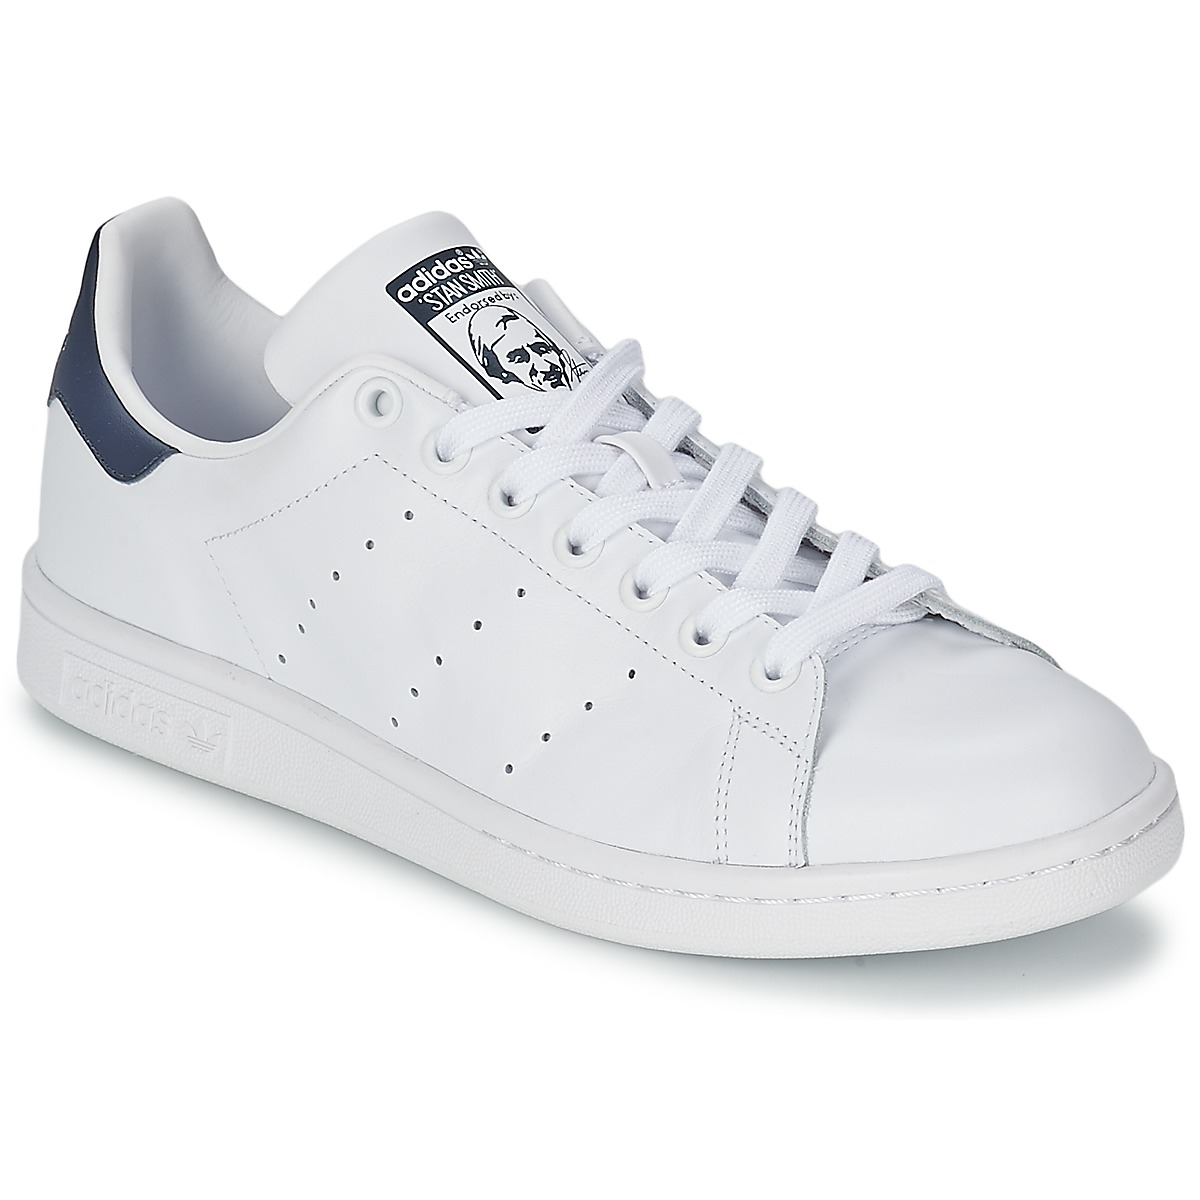 adidas Originals STAN SMITH White   Blue - Fast delivery with ... d768e05684dd6